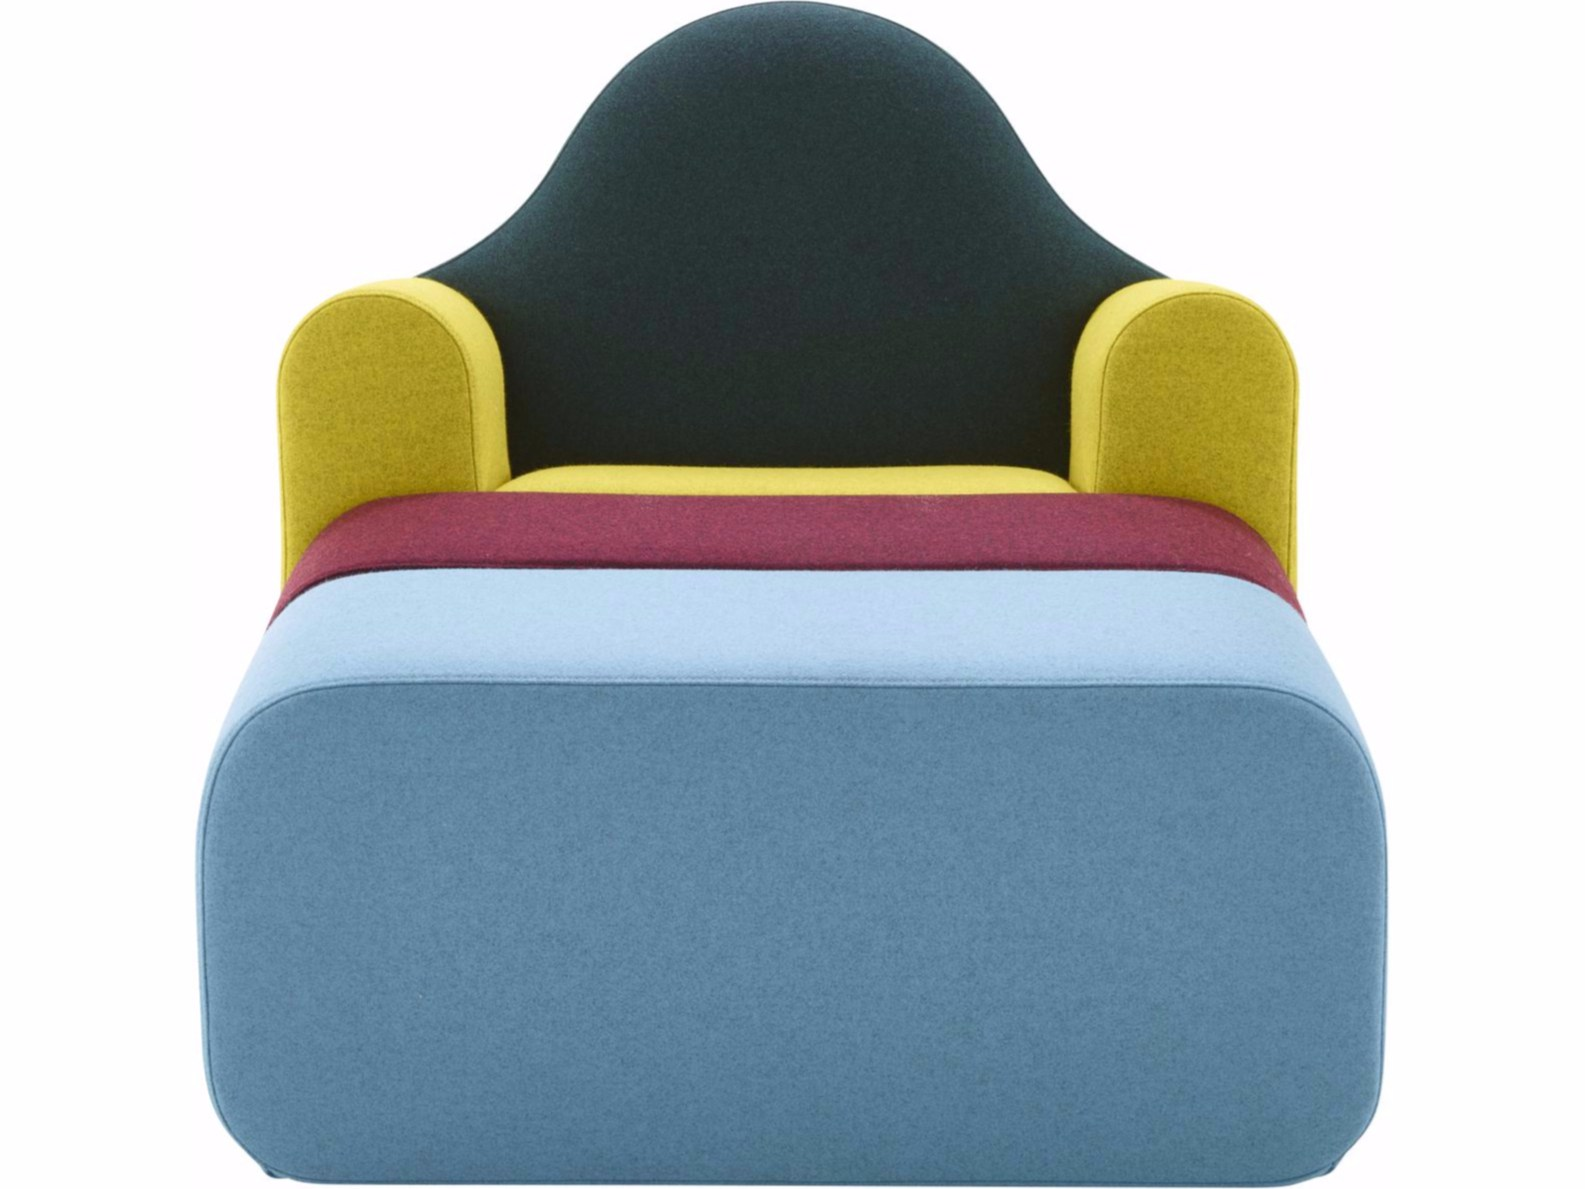 SLICE Sectional Armchair by Pierre Charpin for Ligne Roset